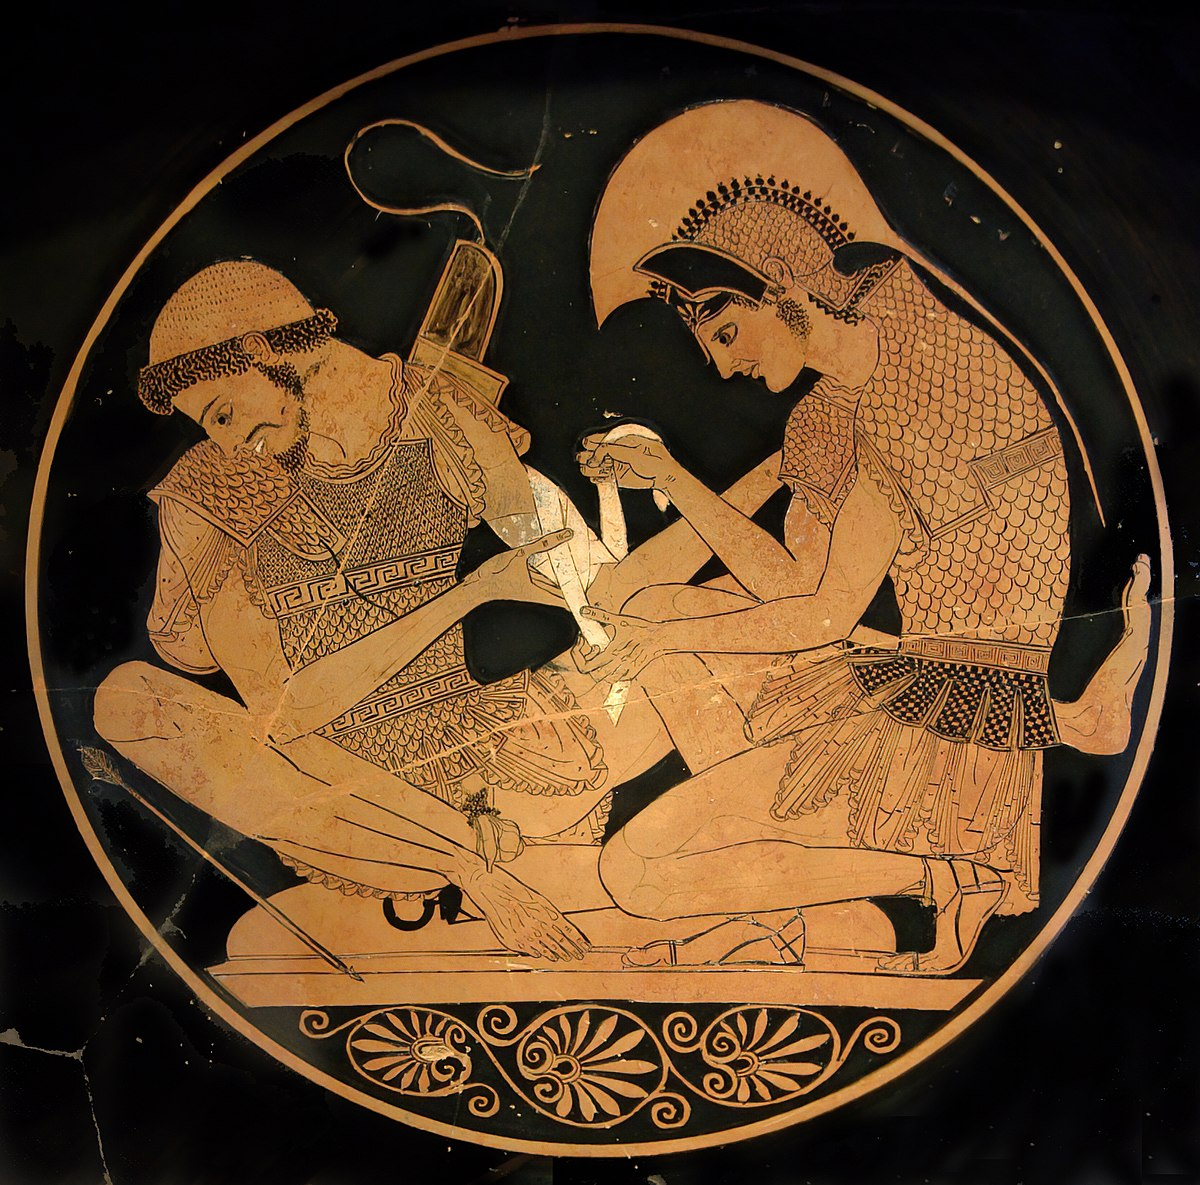 a literary analysis of the character of zeus in the iliad by homer